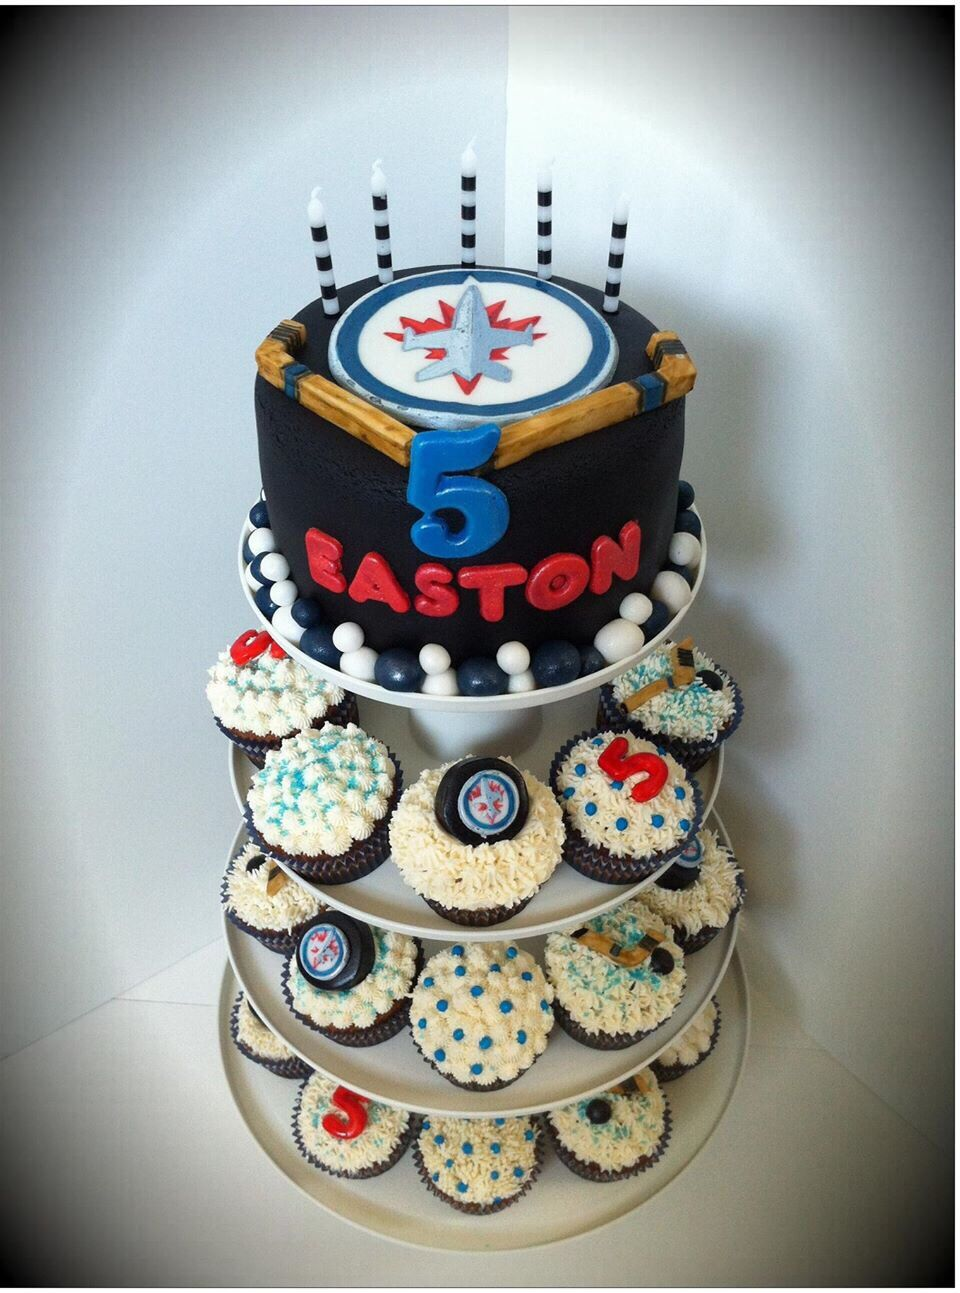 Winnipeg Jets hockey fondant cupcake tower birthday cake I made